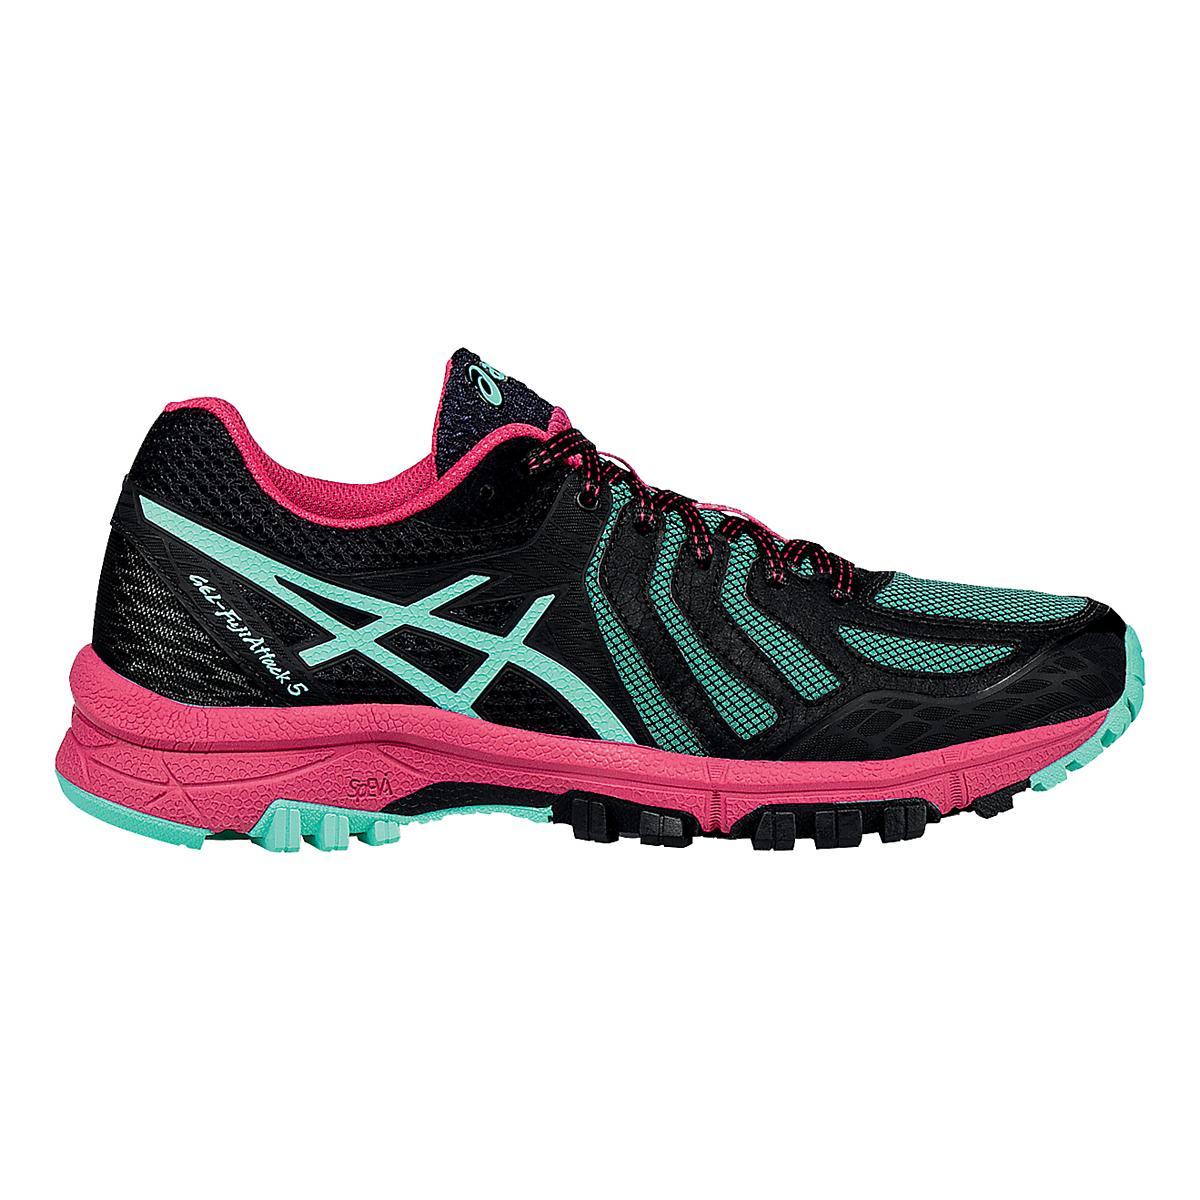 labios Dental Helecho  Womens ASICS GEL-FujiAttack 5 Trail Running Shoe at Road Runner Sports